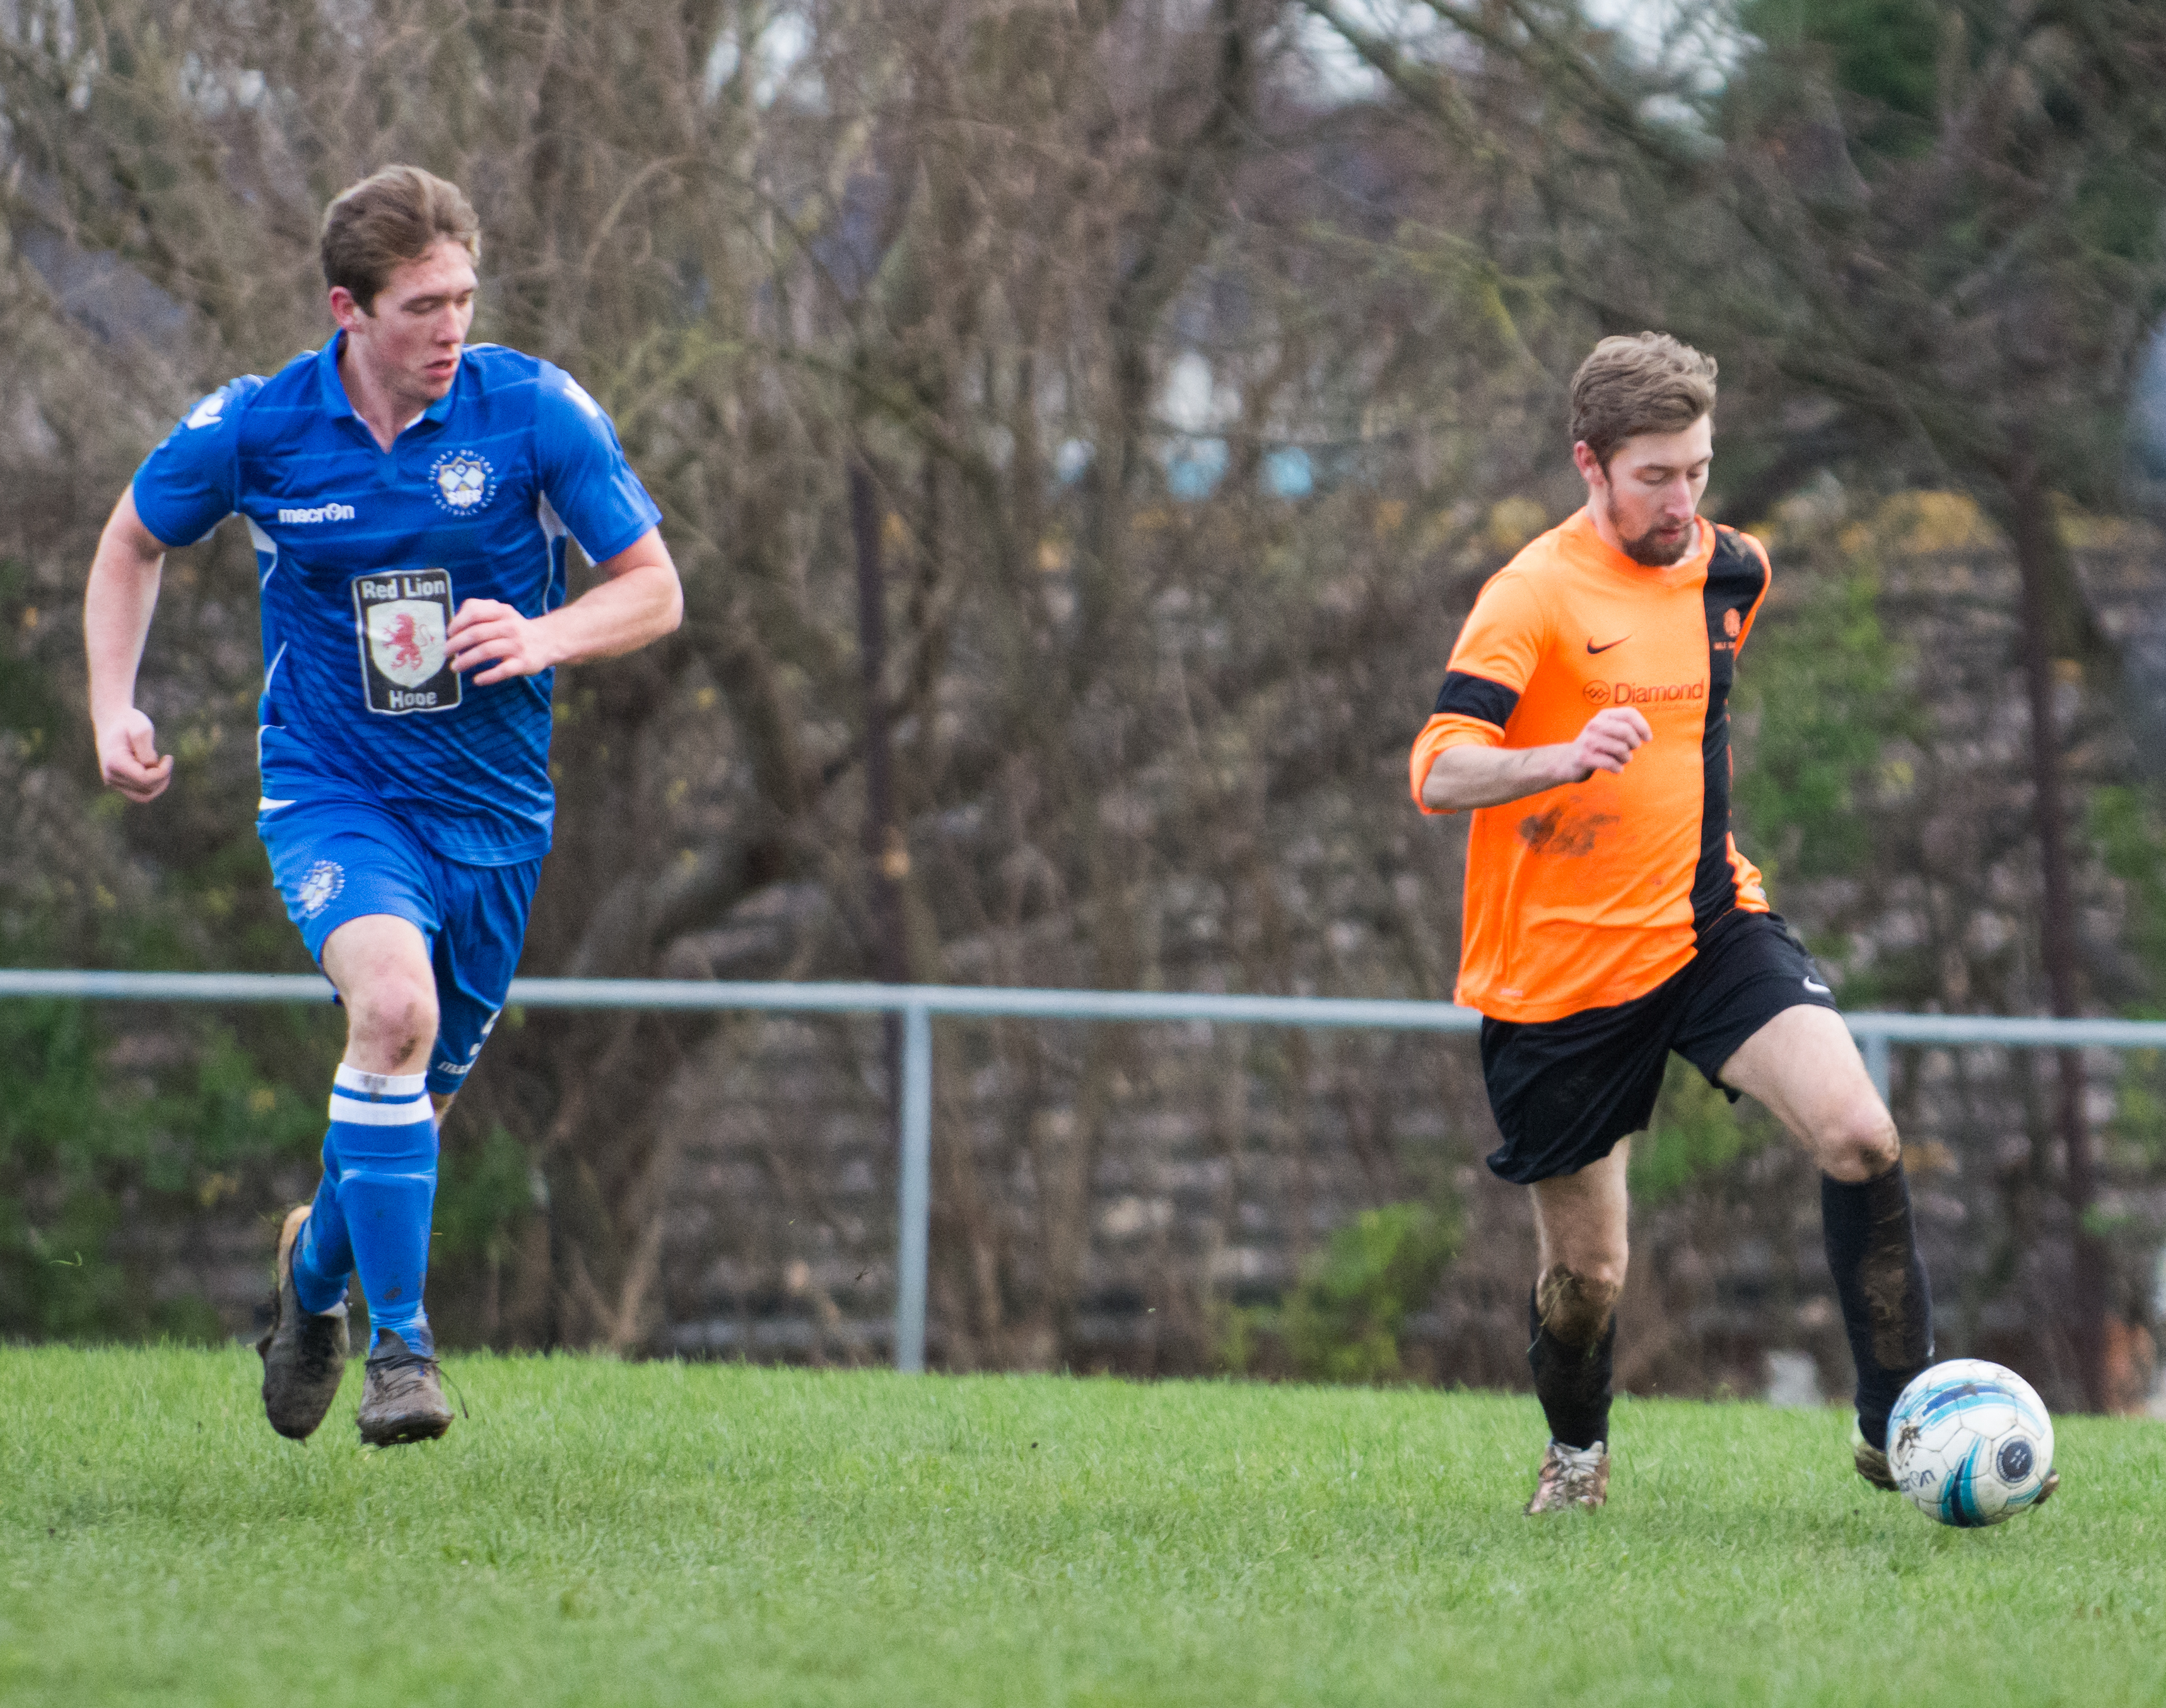 Mile Oak Res vs Sidley United 09.12.17 15